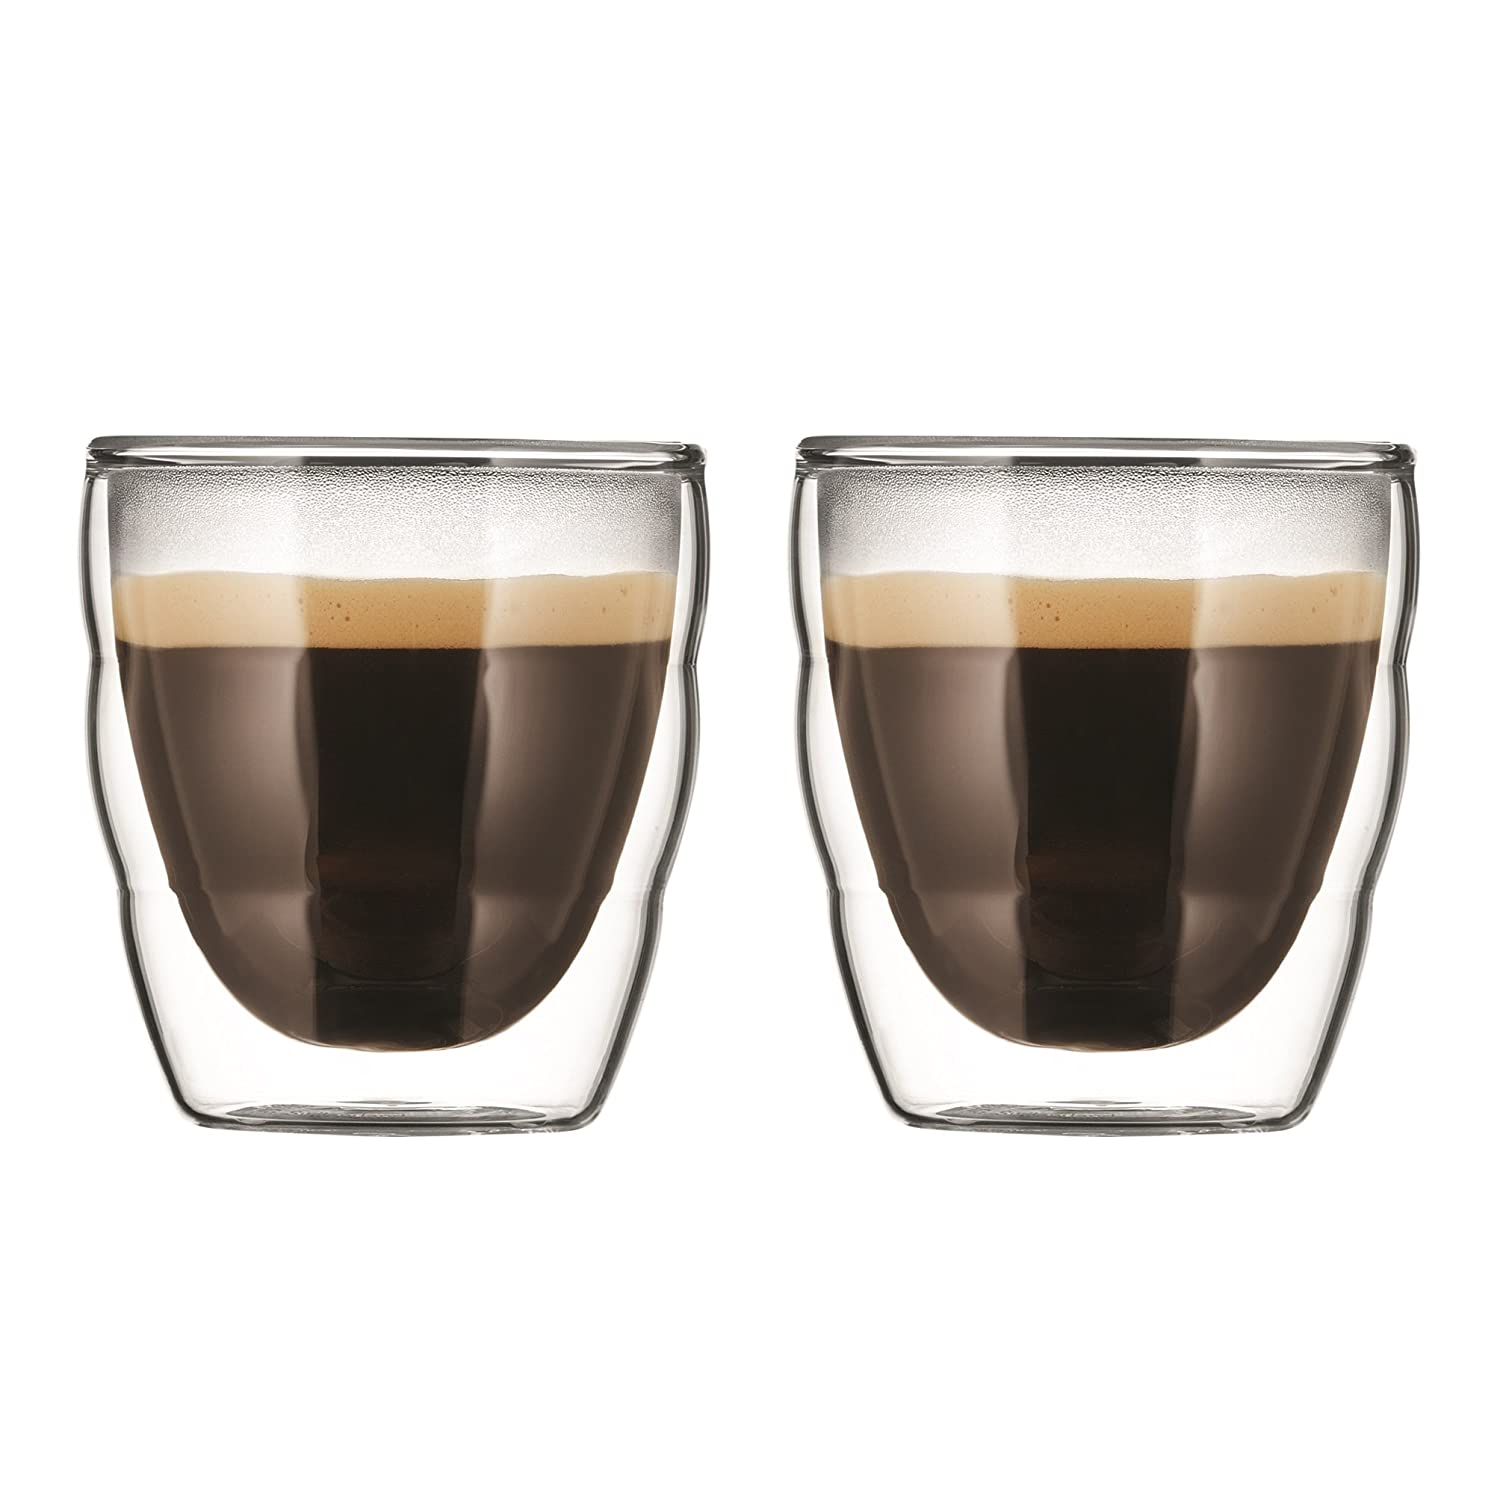 Bodum PILATUS Glass Set (Double-Walled, Isolated, Dishwasher Safe, 0.08 L, 3 oz) - Pack of 2, Transparent 11477-10